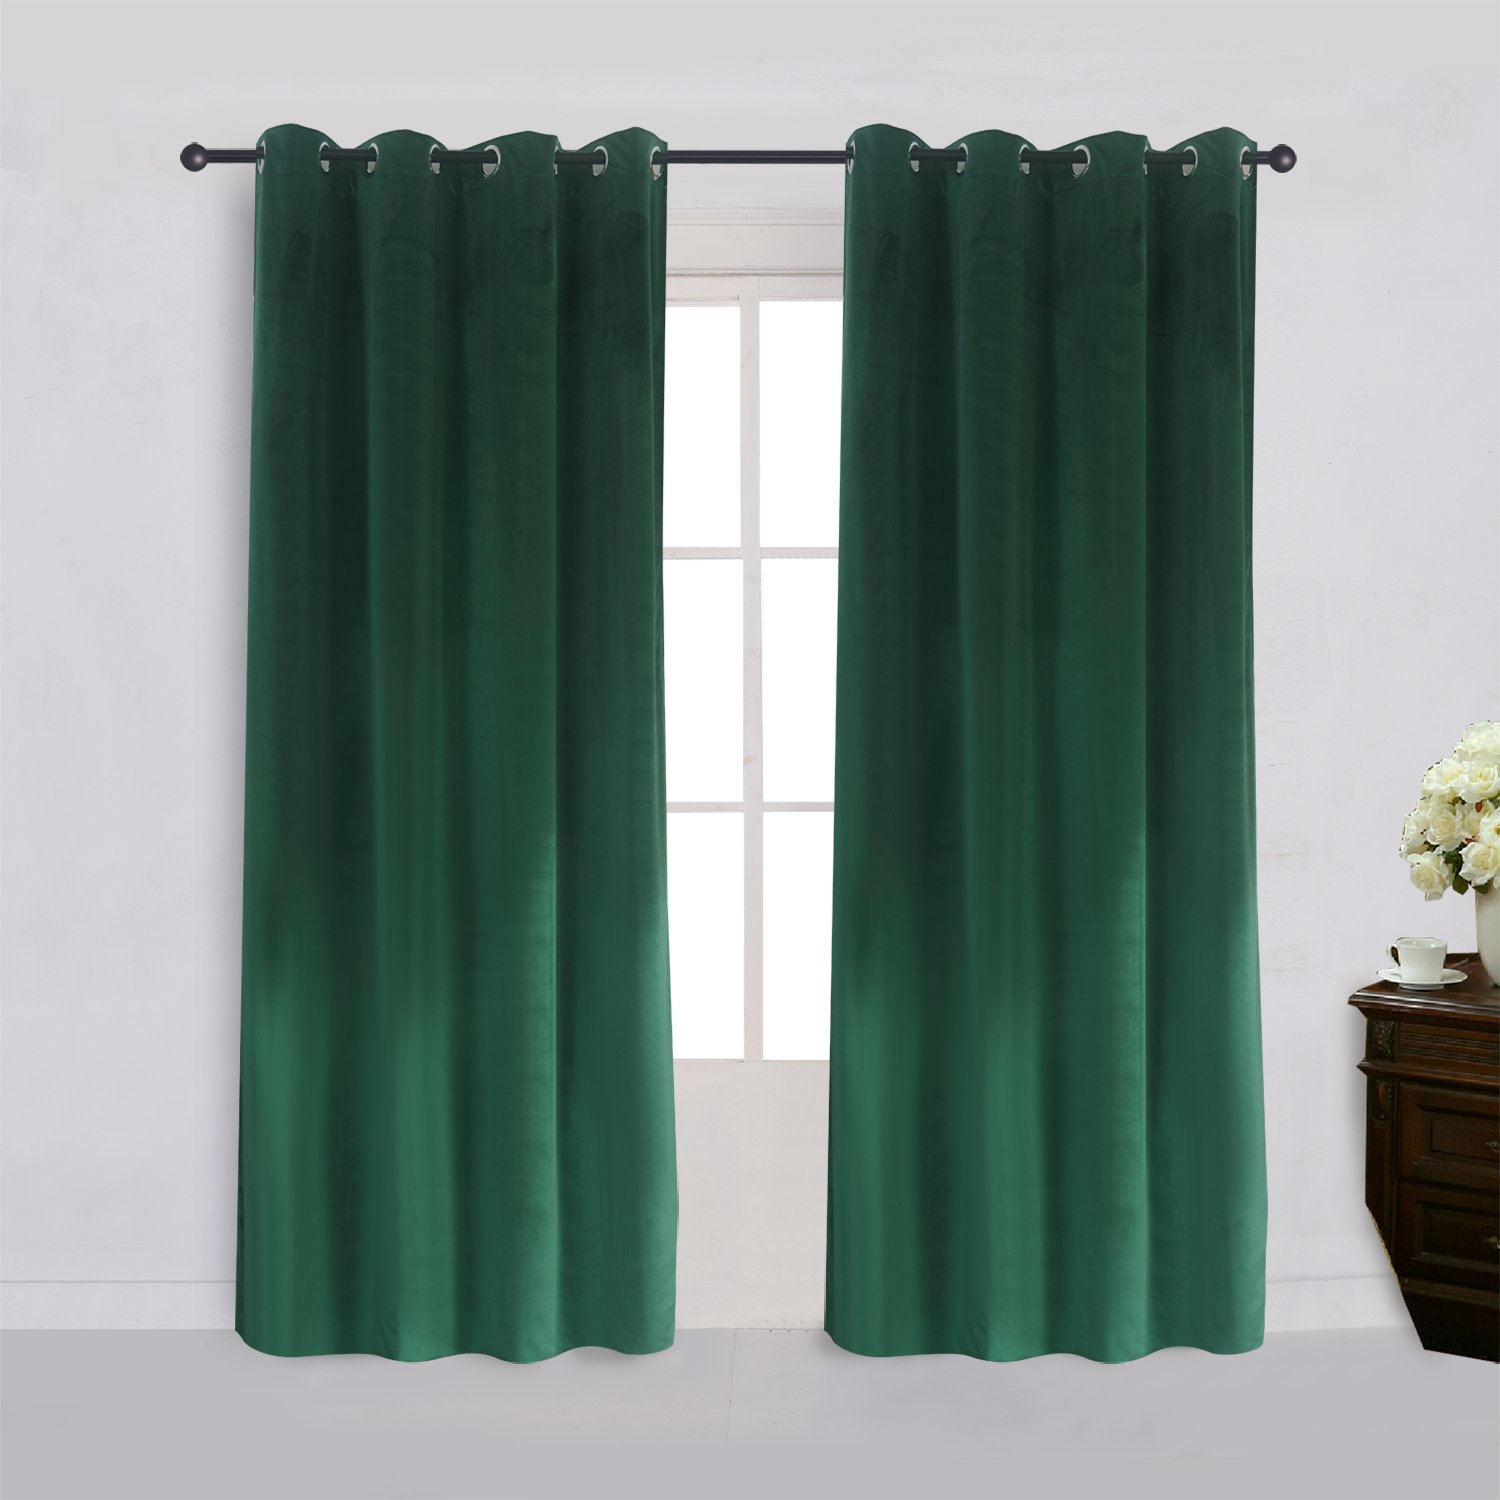 Super Soft Signature Velvet Curtains Set of 2 Dark-green Classic Blackout Panels Home Theater Grommet Drapes Eyelet 52Wx96L-inch Dark Green(2 panels) with Matching Tiebacks